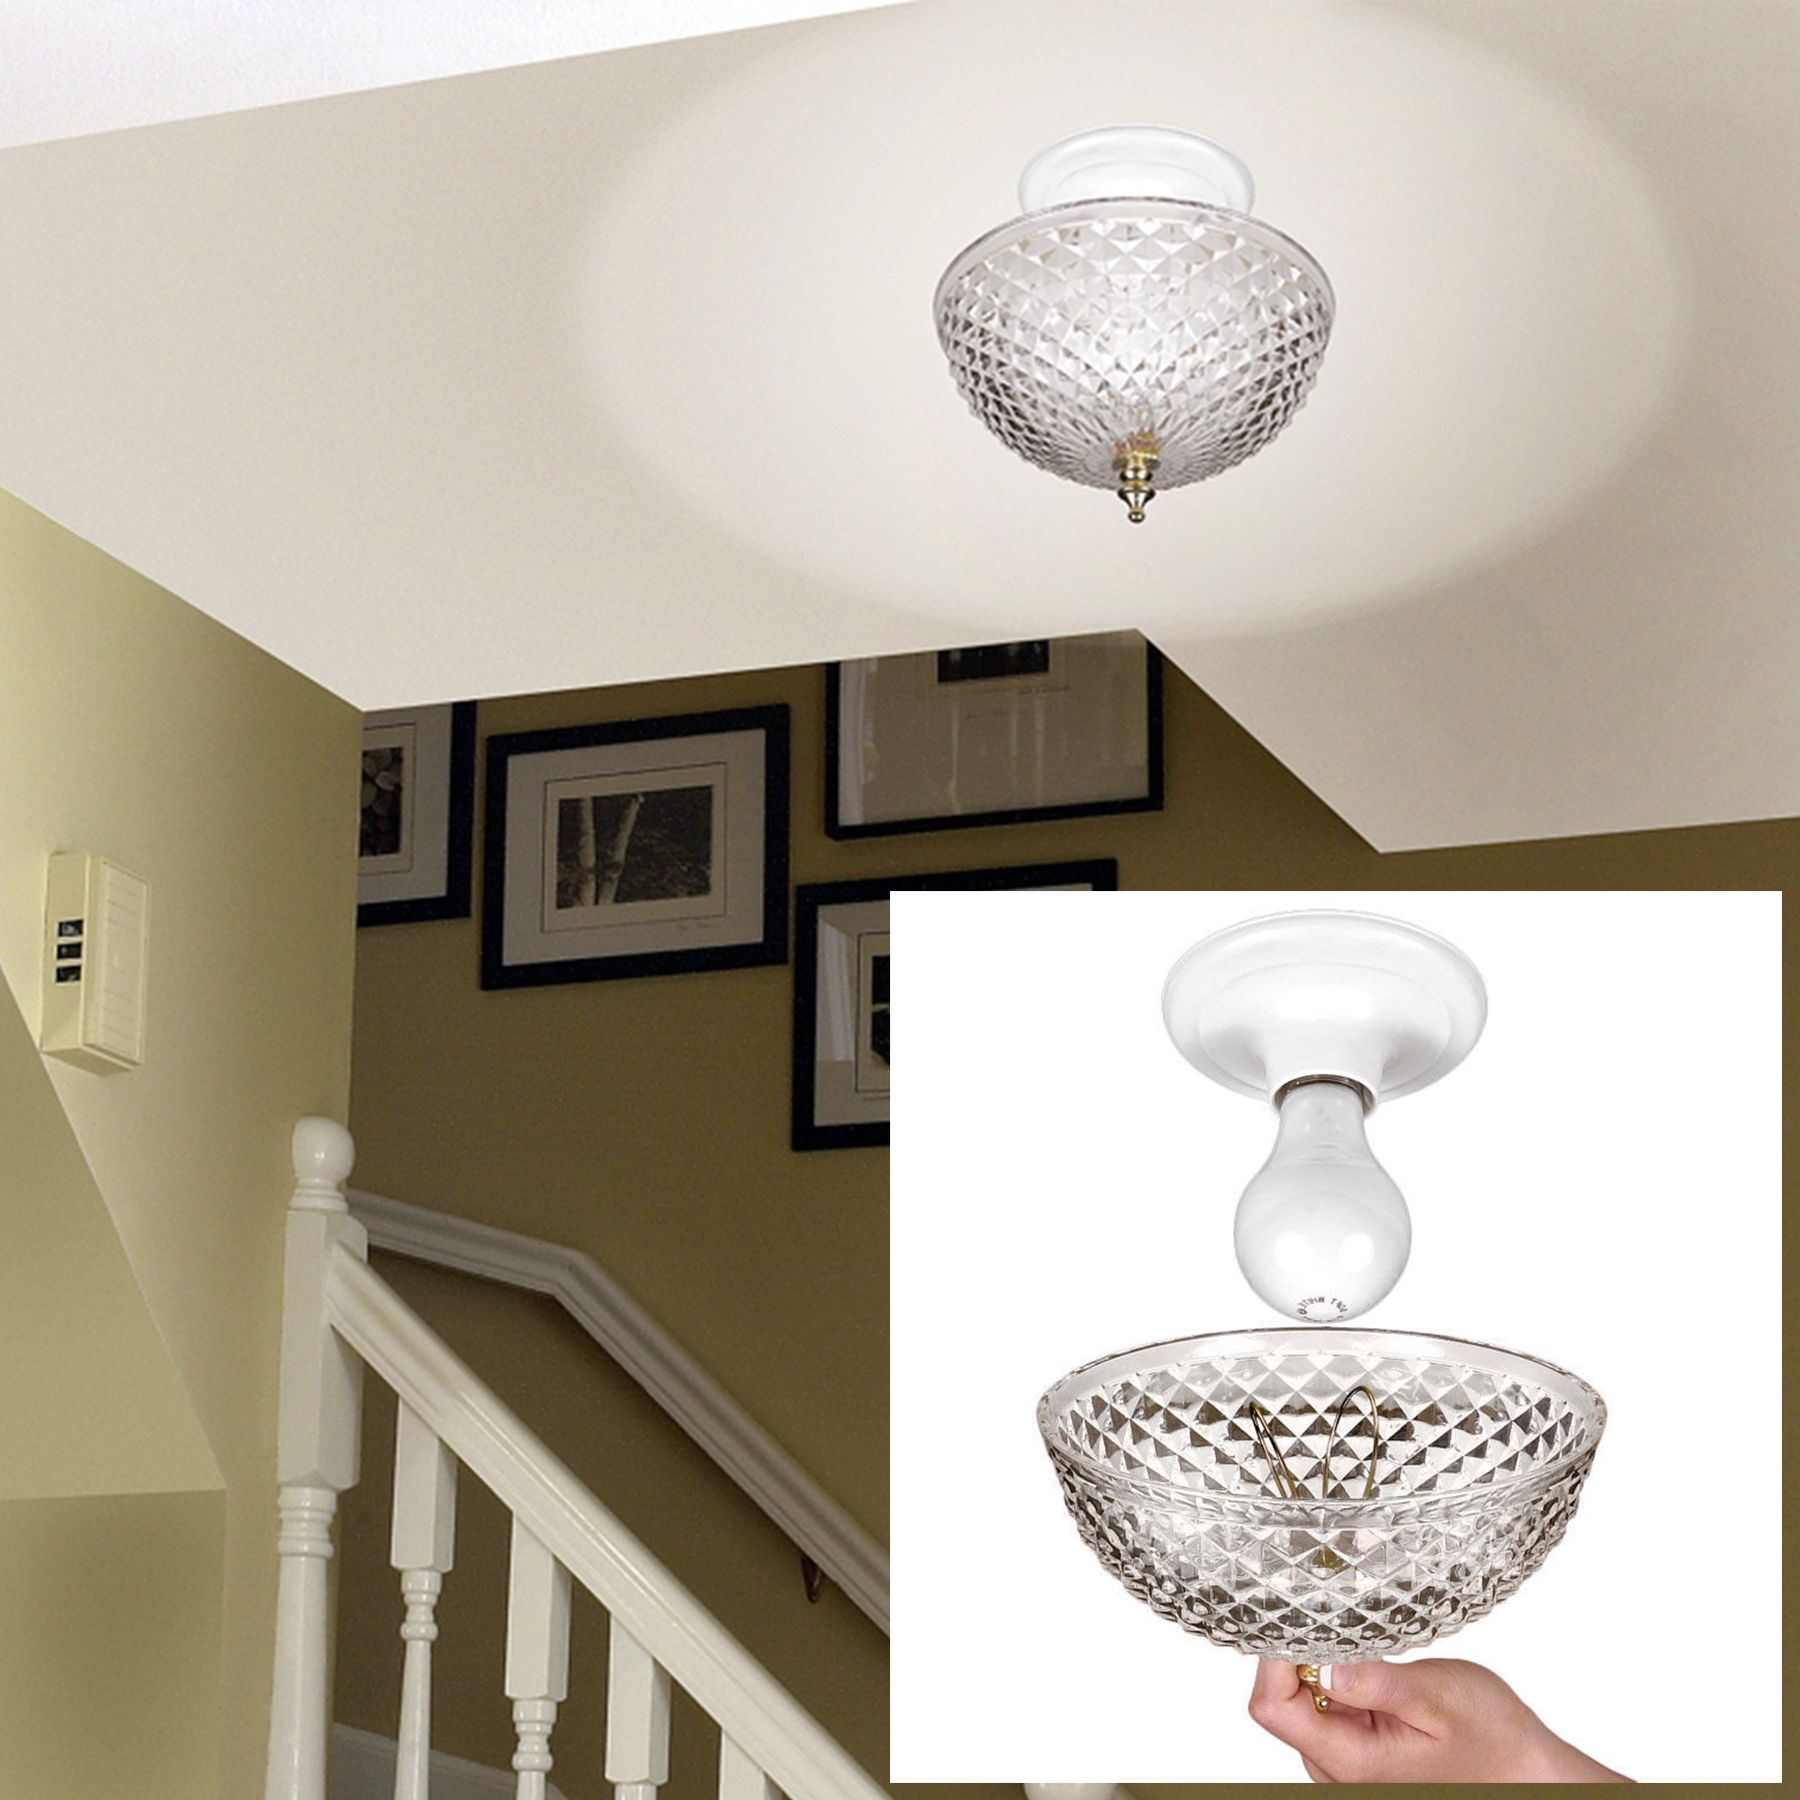 Clip On Light Bulb Covers For Ceiling Lights Decorative Light